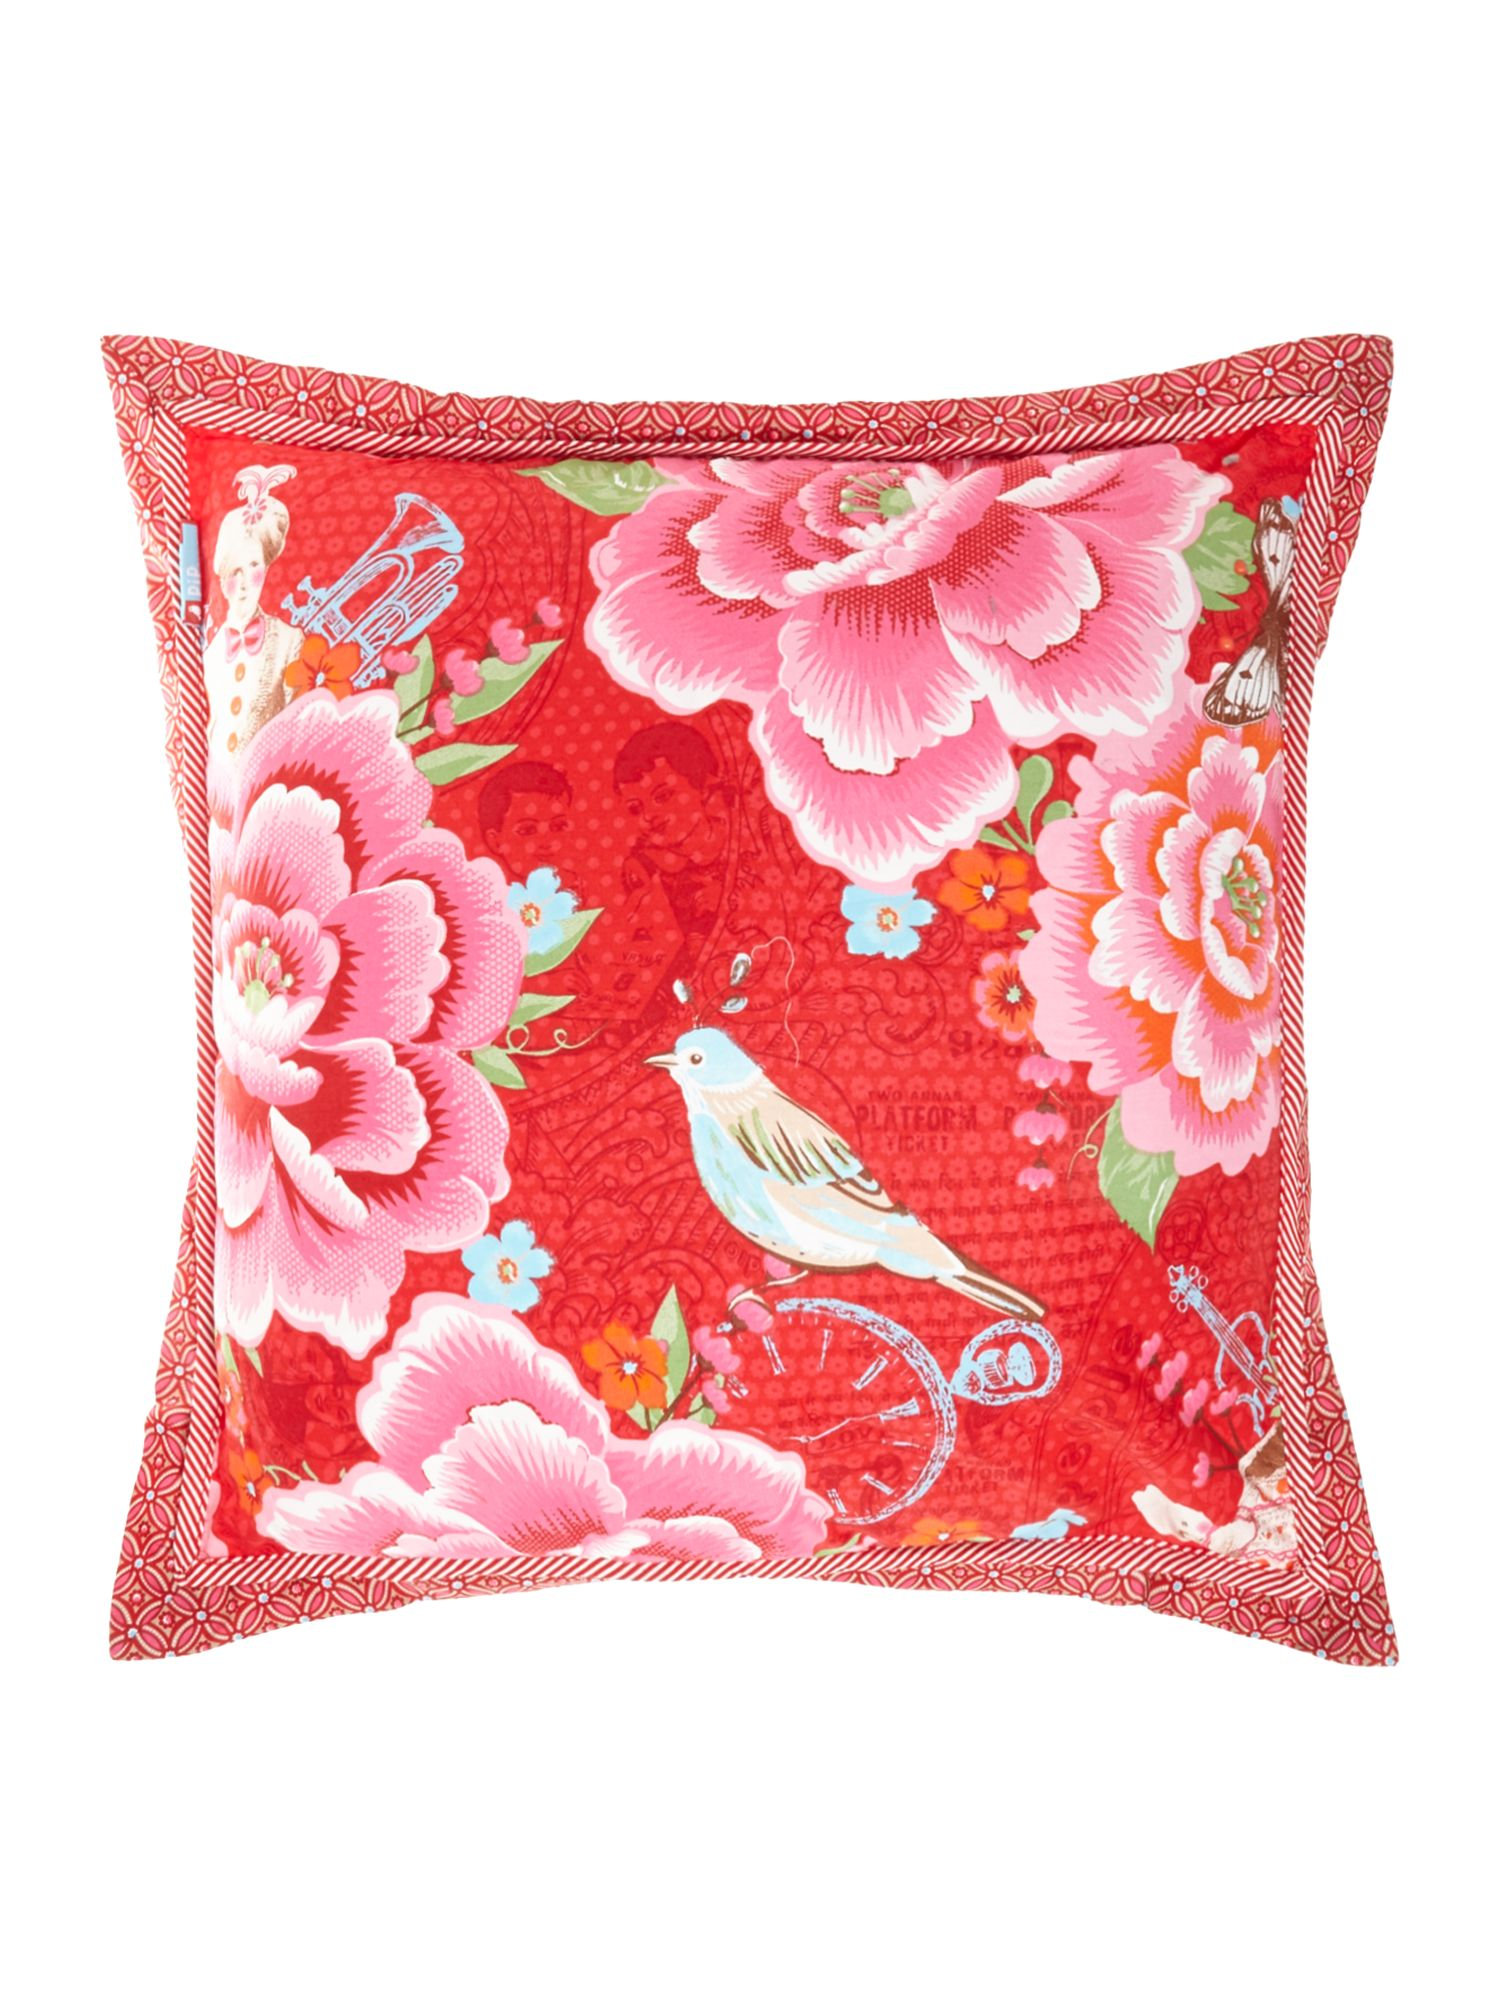 Mumbai Express cushion red